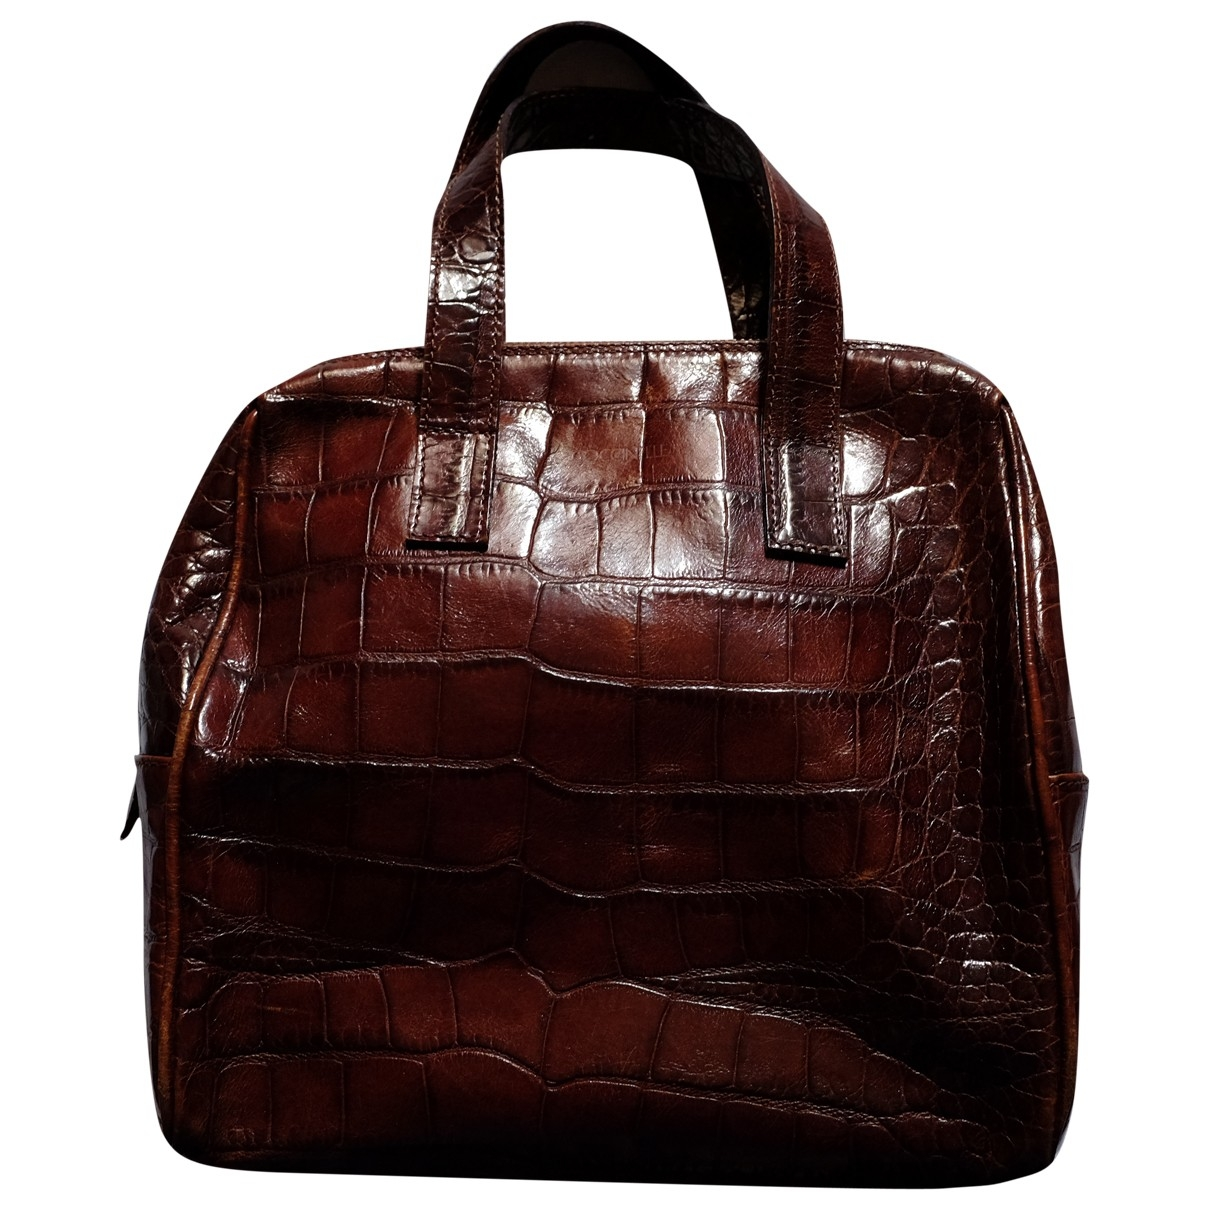 Coccinelle \N Brown Patent leather handbag for Women \N